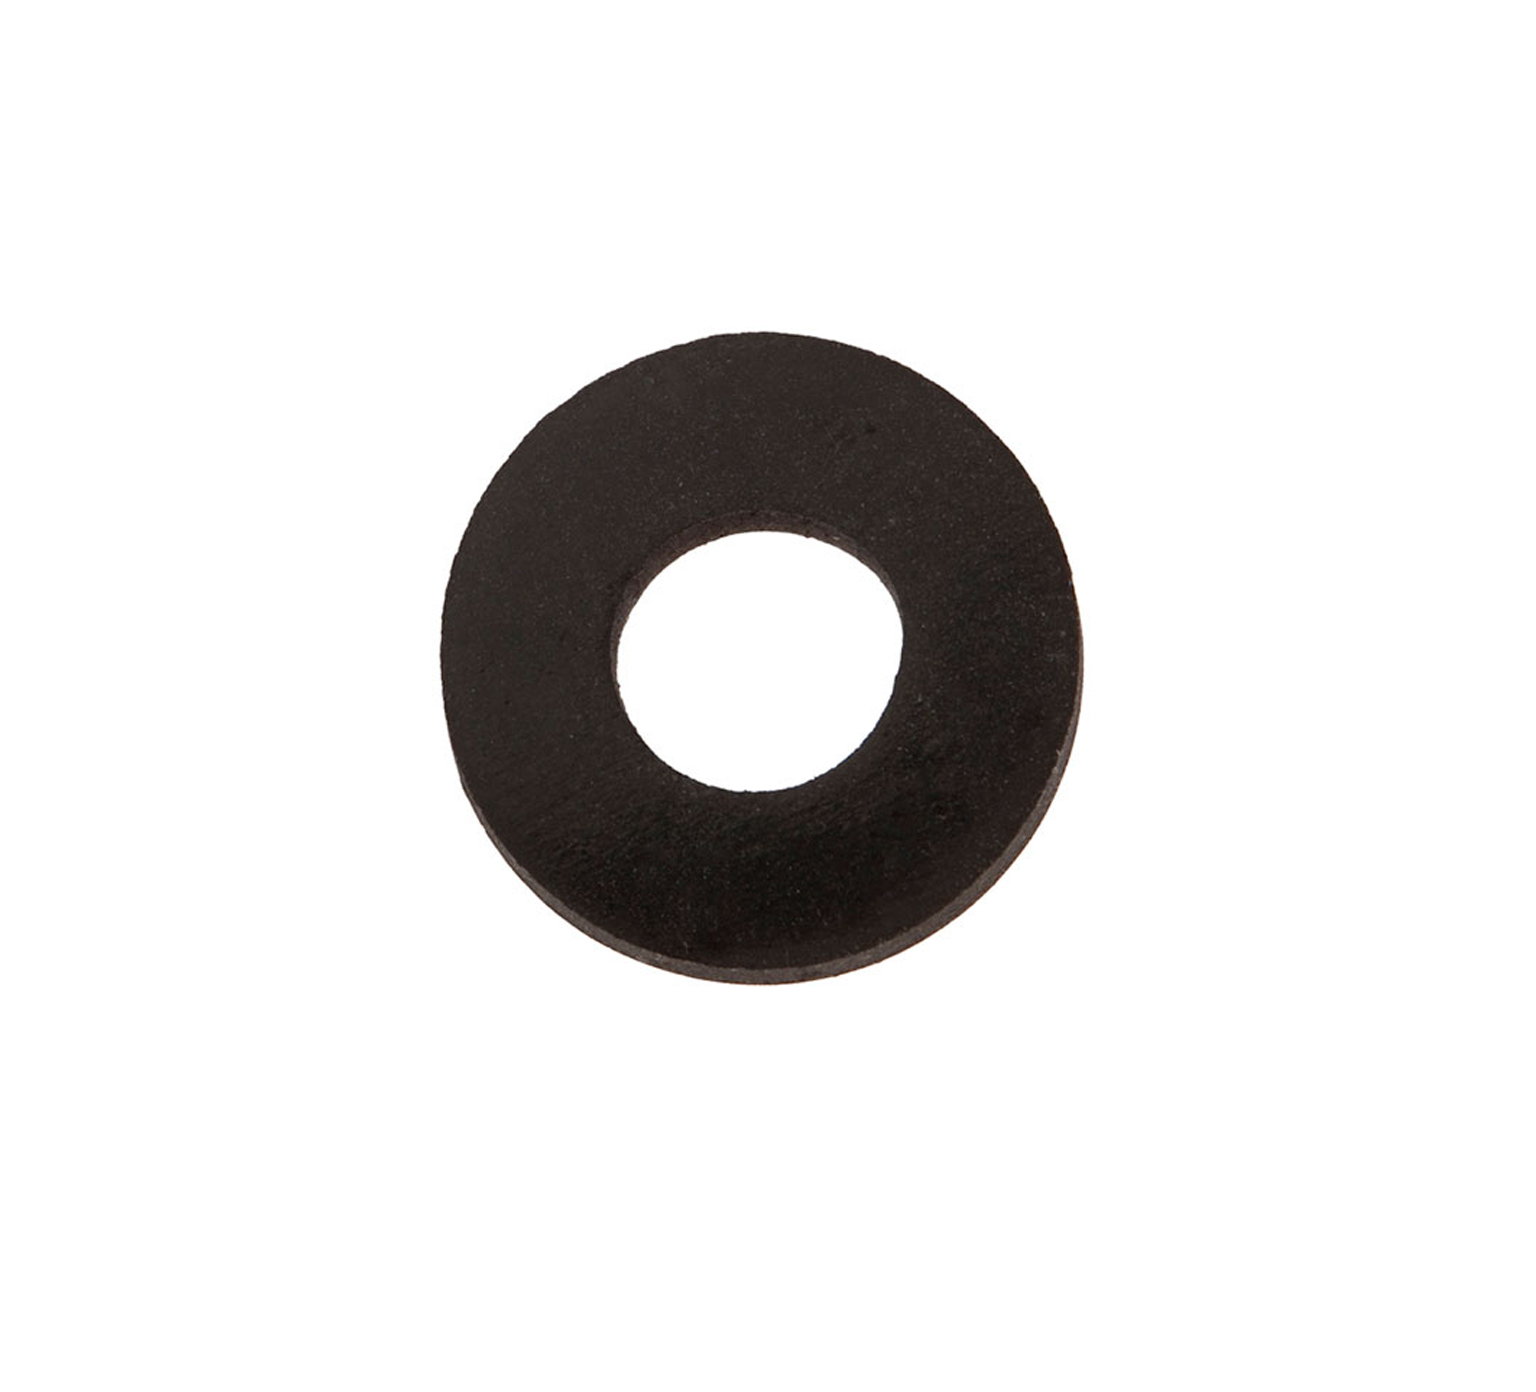 rubber seals, rubber bumper, rubber washer, rubber valve, rubber bushings, rubber tape, rubber bellows, rubber clip, rubber hose, rubber extrusions, hydraulic seals, spiral wound gasket, rubber pads, rubber sheet, rubber bumpers, rubber tube, rubber sleeve, rubber body, rubber seal, rubber coupling, rubber mount, rubber plug, rubber door, ring joint gasket, rubber tubing, rubber parts, rubber gloves, rubber cylinder, rubber bush, rubber truck, rubber products, rubber rollers, rubber grommets, rubber diaphragm, graphite packing, ptfe gasket, rubber sheets, on rubber gasket